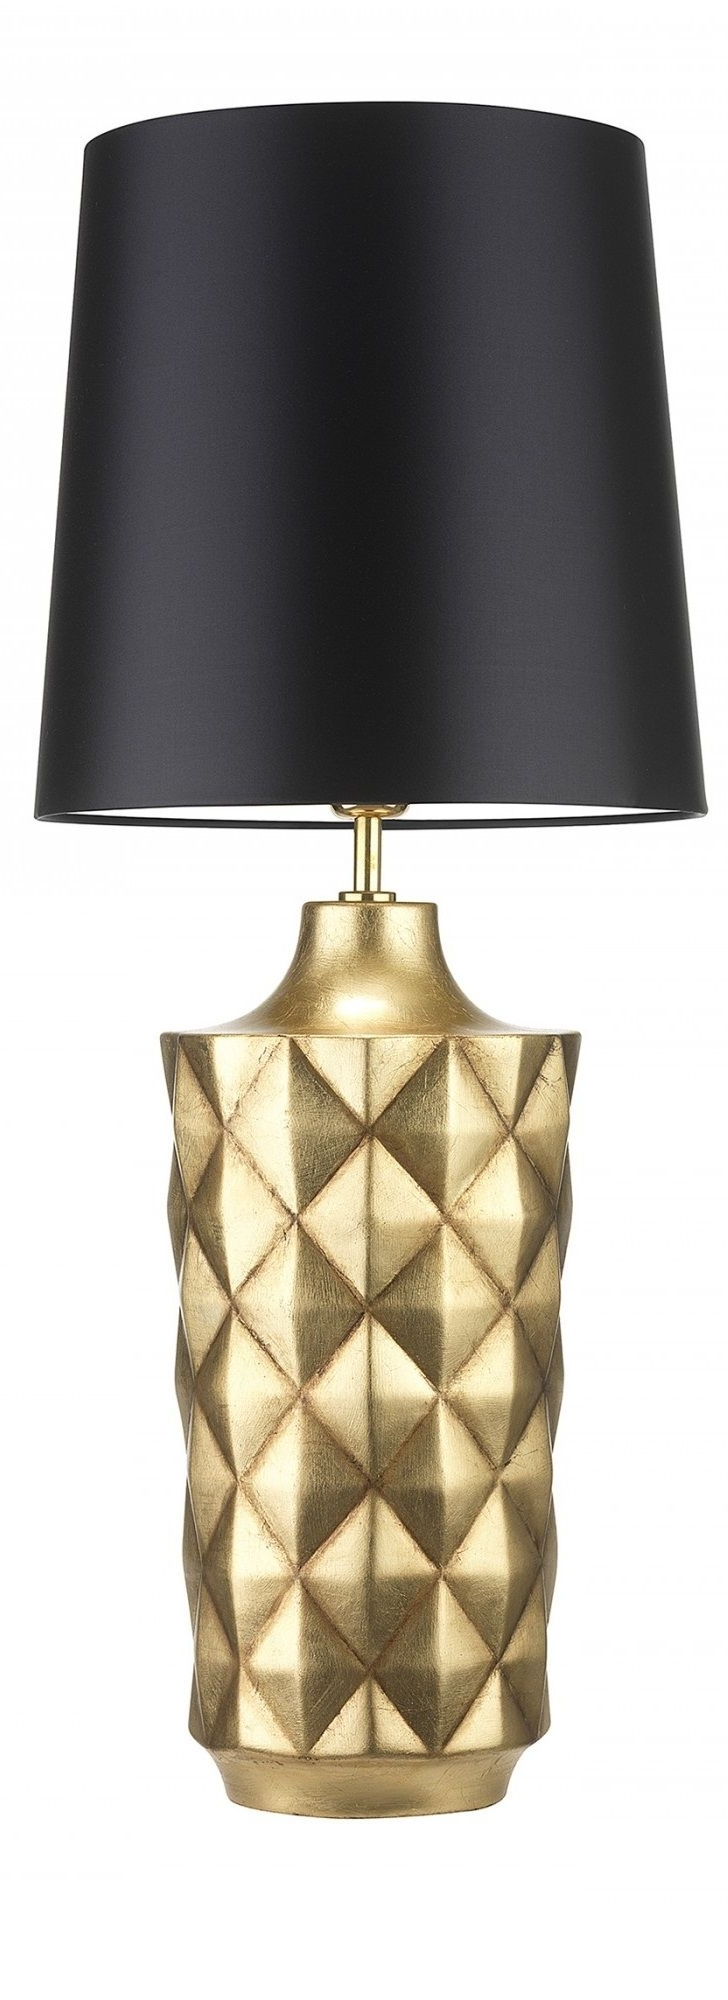 373 Best Lighting – Table Lamps Images On Pinterest (View 13 of 20)